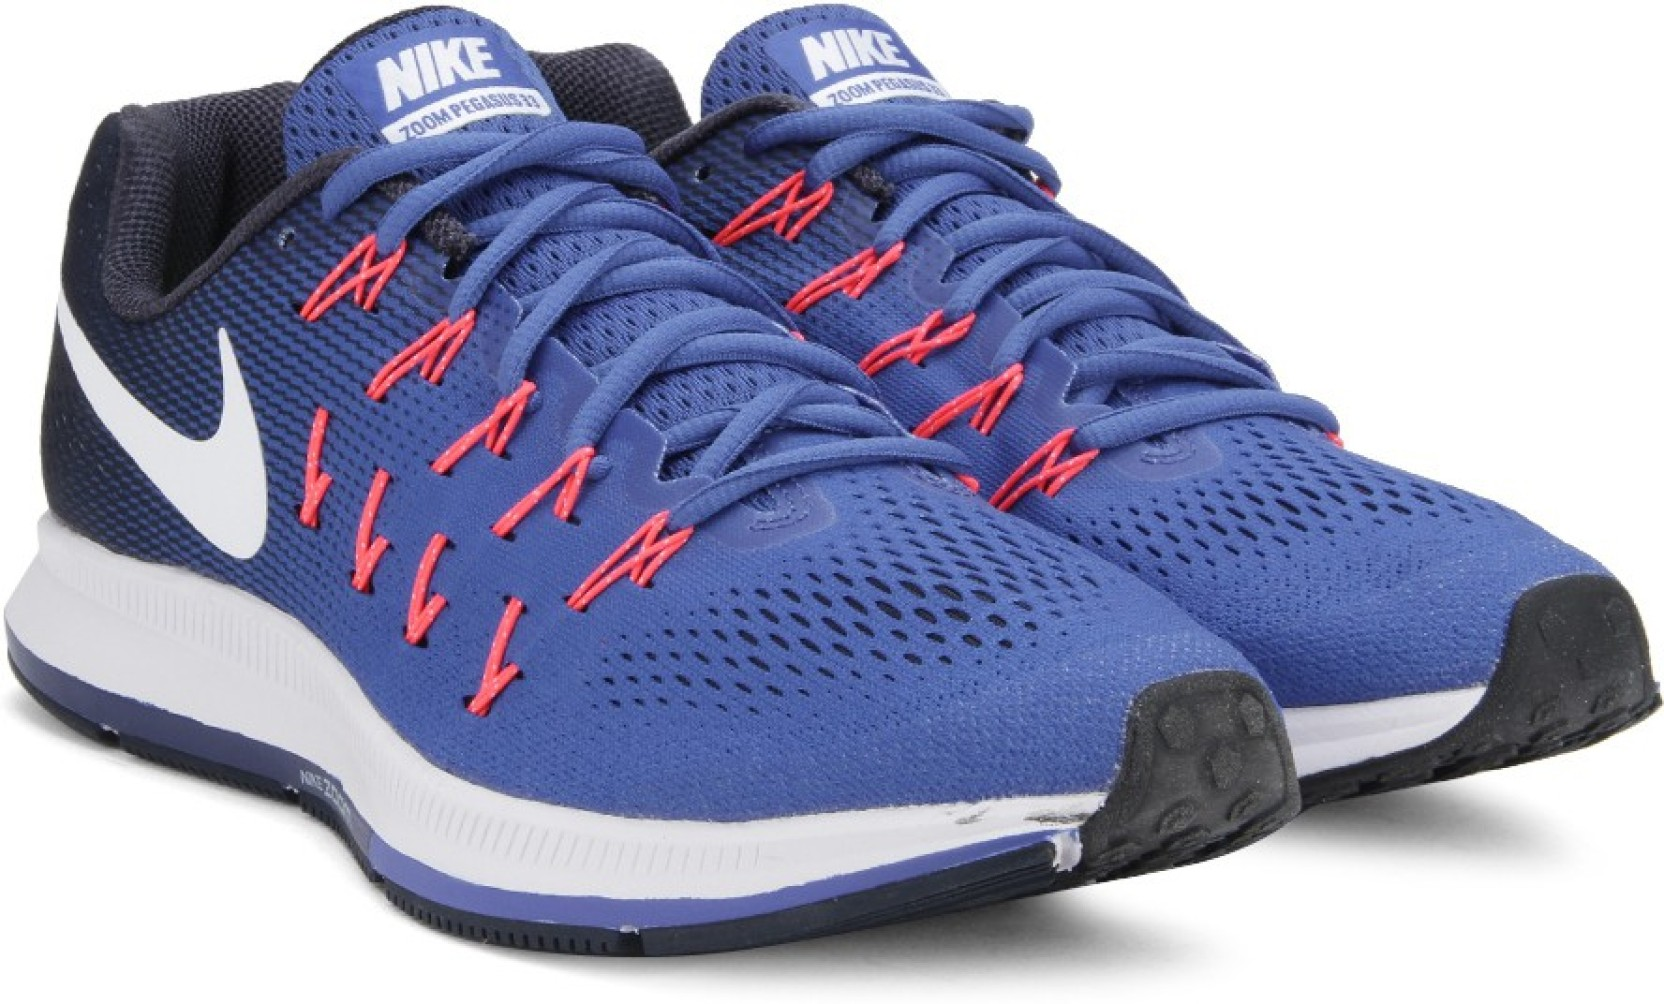 650c3bb5add9 ... sweden nike air zoom pegasus 33 running shoes for men multicolor 656f7  18a0f